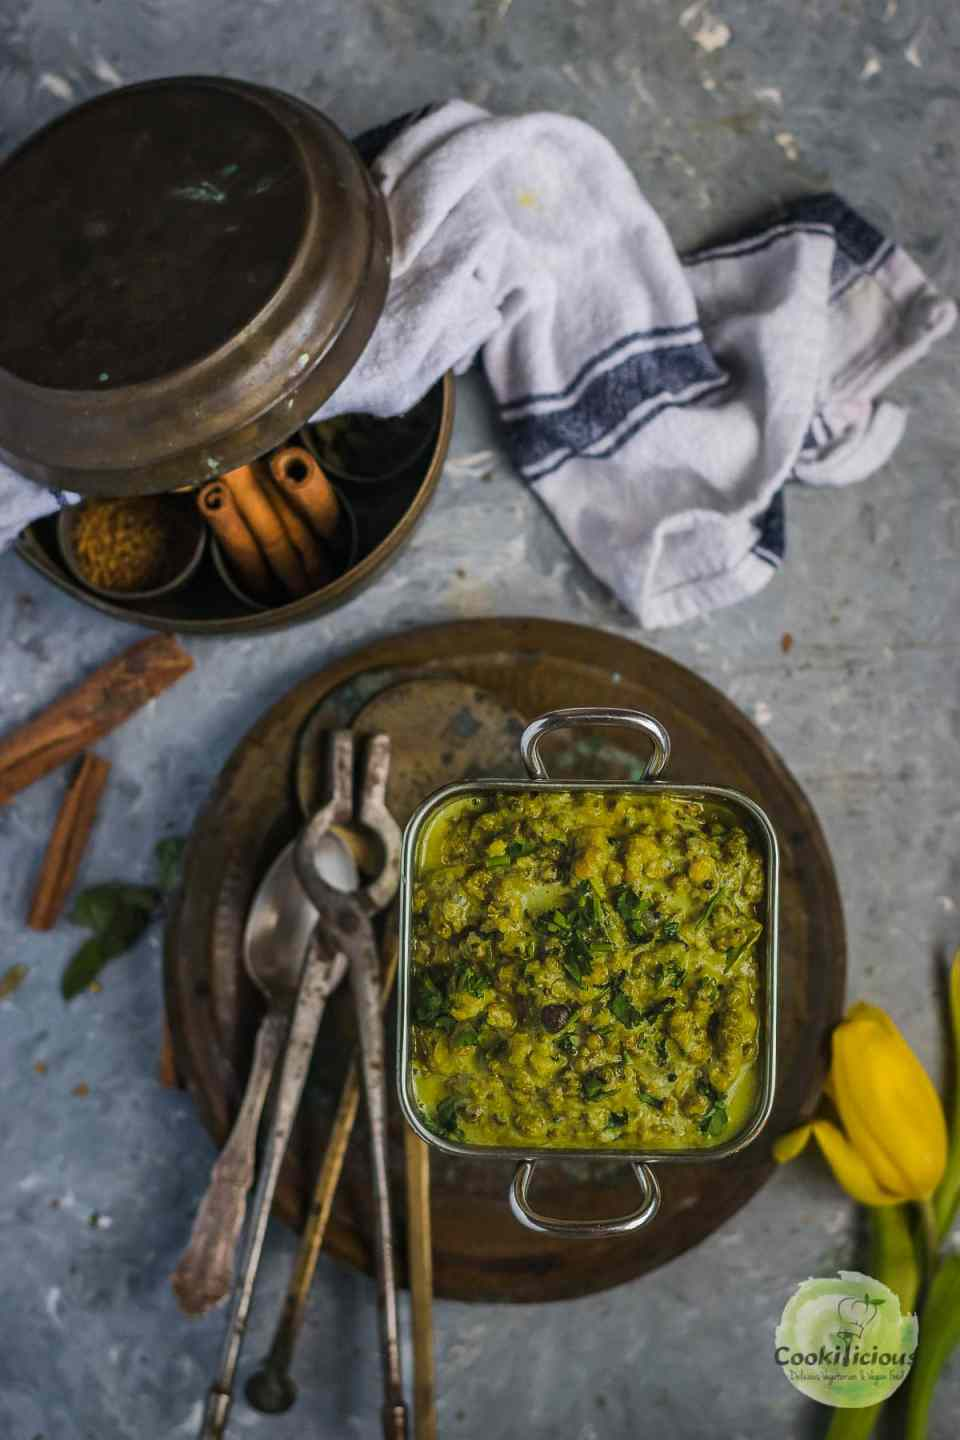 a square bowl filled with mung bean sprouts Coconut Indian vegan recipe and cutlery on the side and a kitchen towel on the top